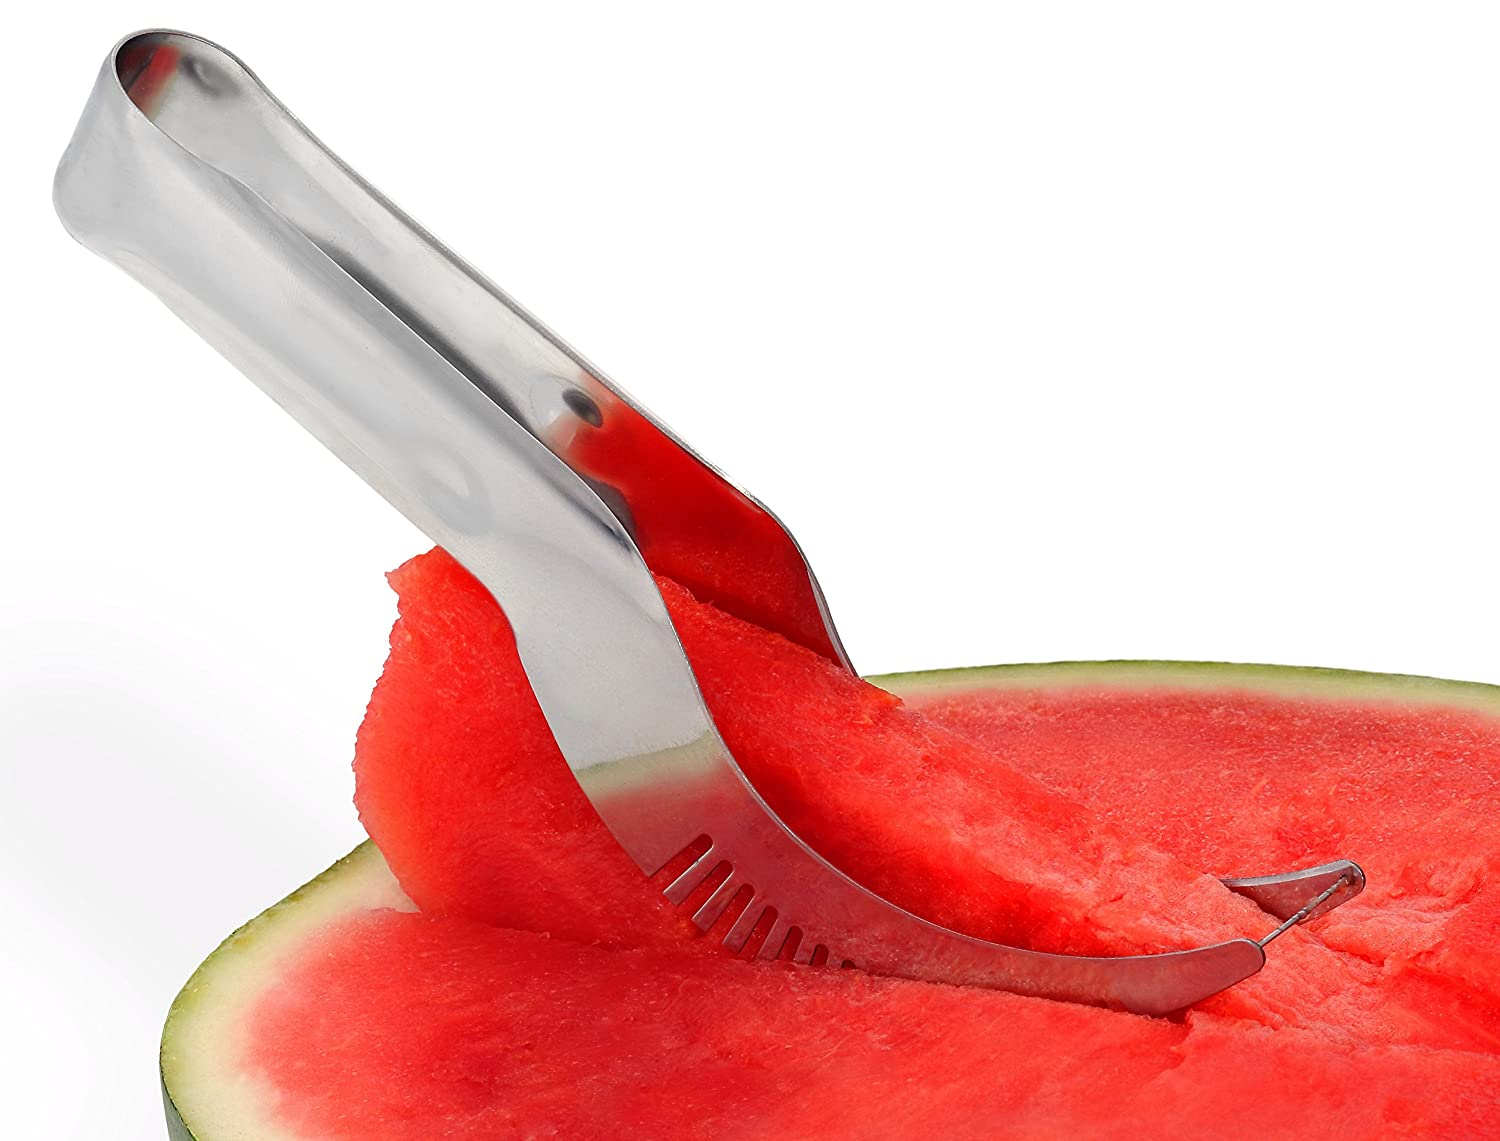 Watermelon Slicer Cutter & Server - Stainless Steel - Professional Grade - Dishwasher Safe - Perfect Gift for Family & Friends - FASTEST and EASIEST way to ENJOY your fruit PMC Quality Products YWS2721